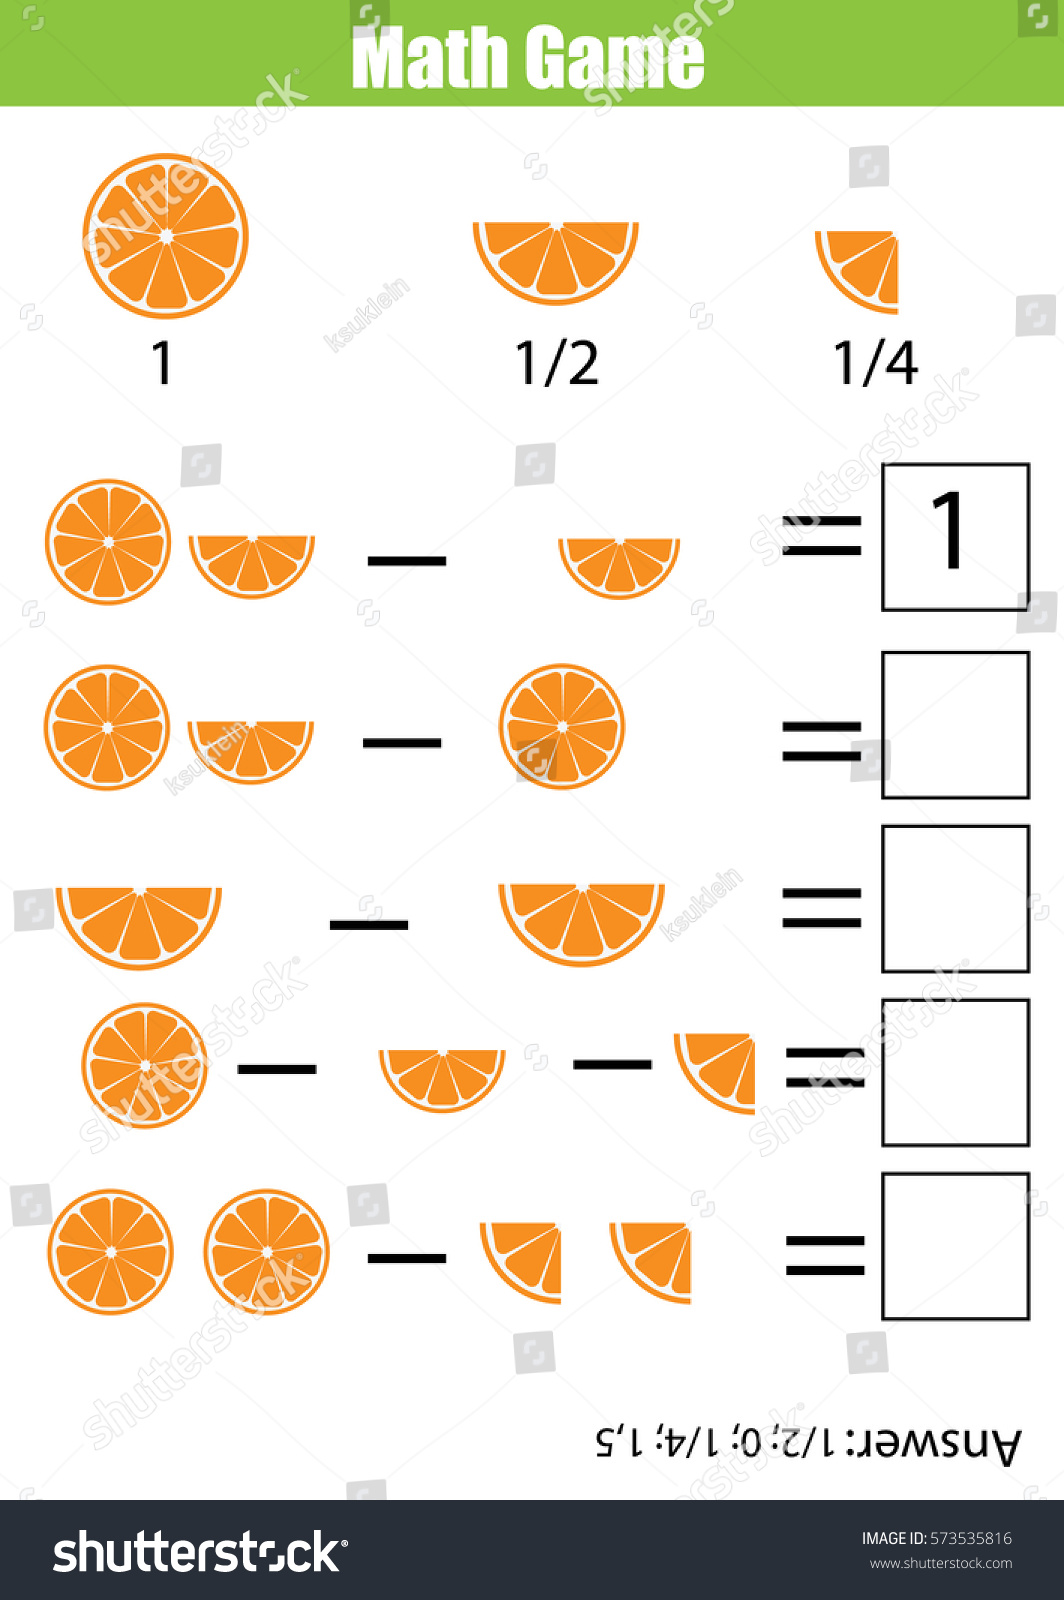 Mathematics Educational Game Children Learning Counting